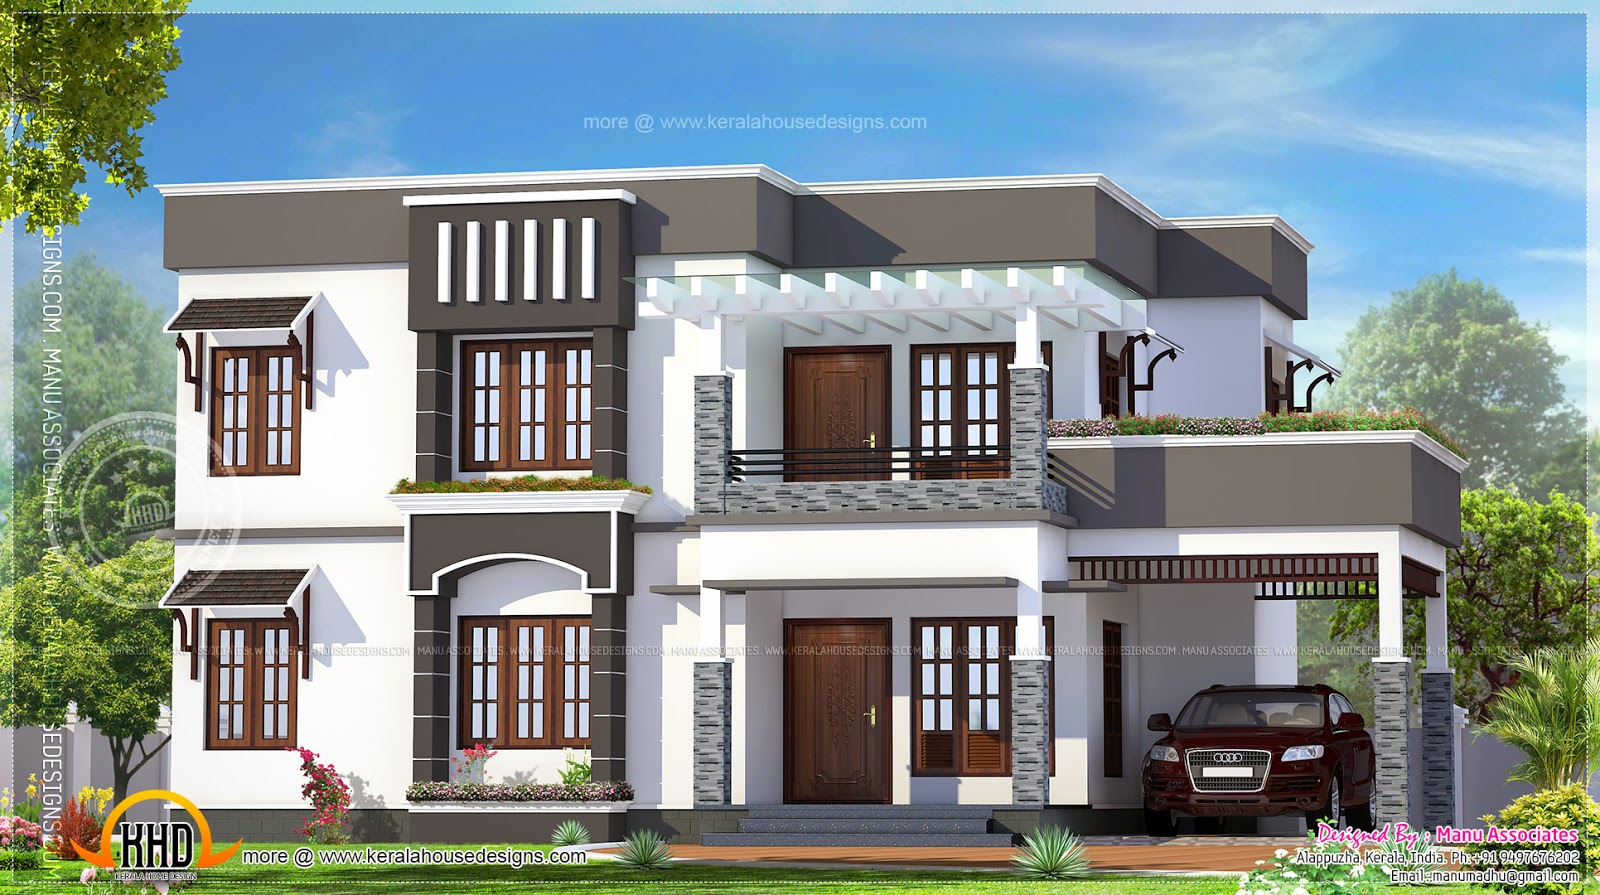 4 bhk flat roof house exterior kerala home design and for Home outer colour design